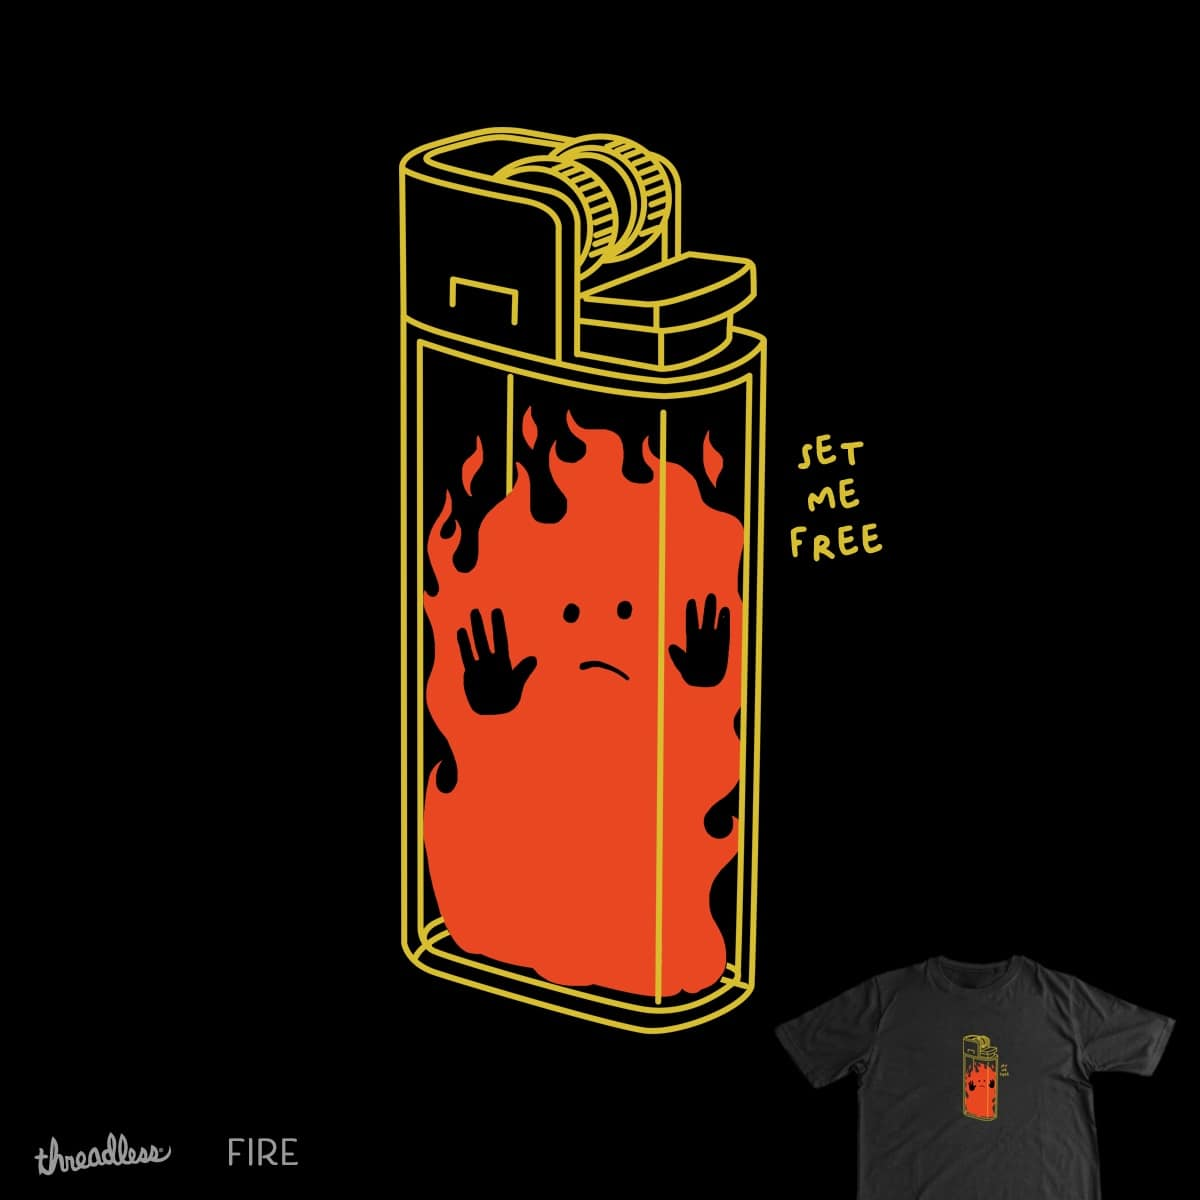 Trapped by DonJono on Threadless